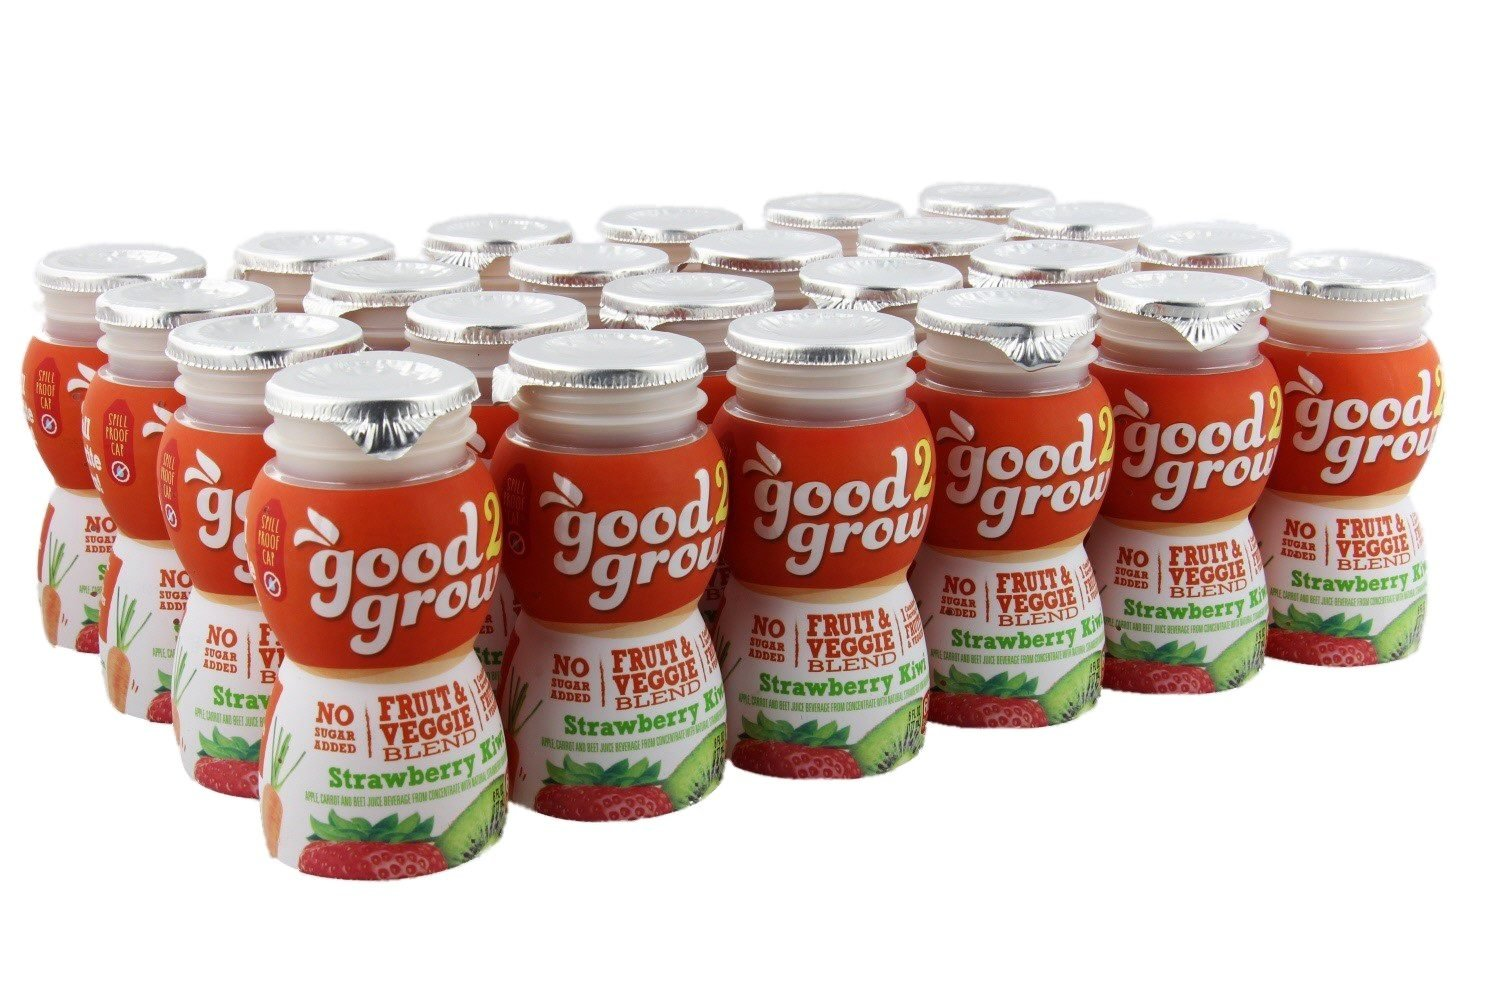 good2grow Fruit & Veggie Blend – Strawberry Kiwi 6oz Refill Drink Bottles Pack, 24 Count - No Sugar Added, An Excellent Source of Vitamin C - Use with Collectible Spill-Proof Topper Characters